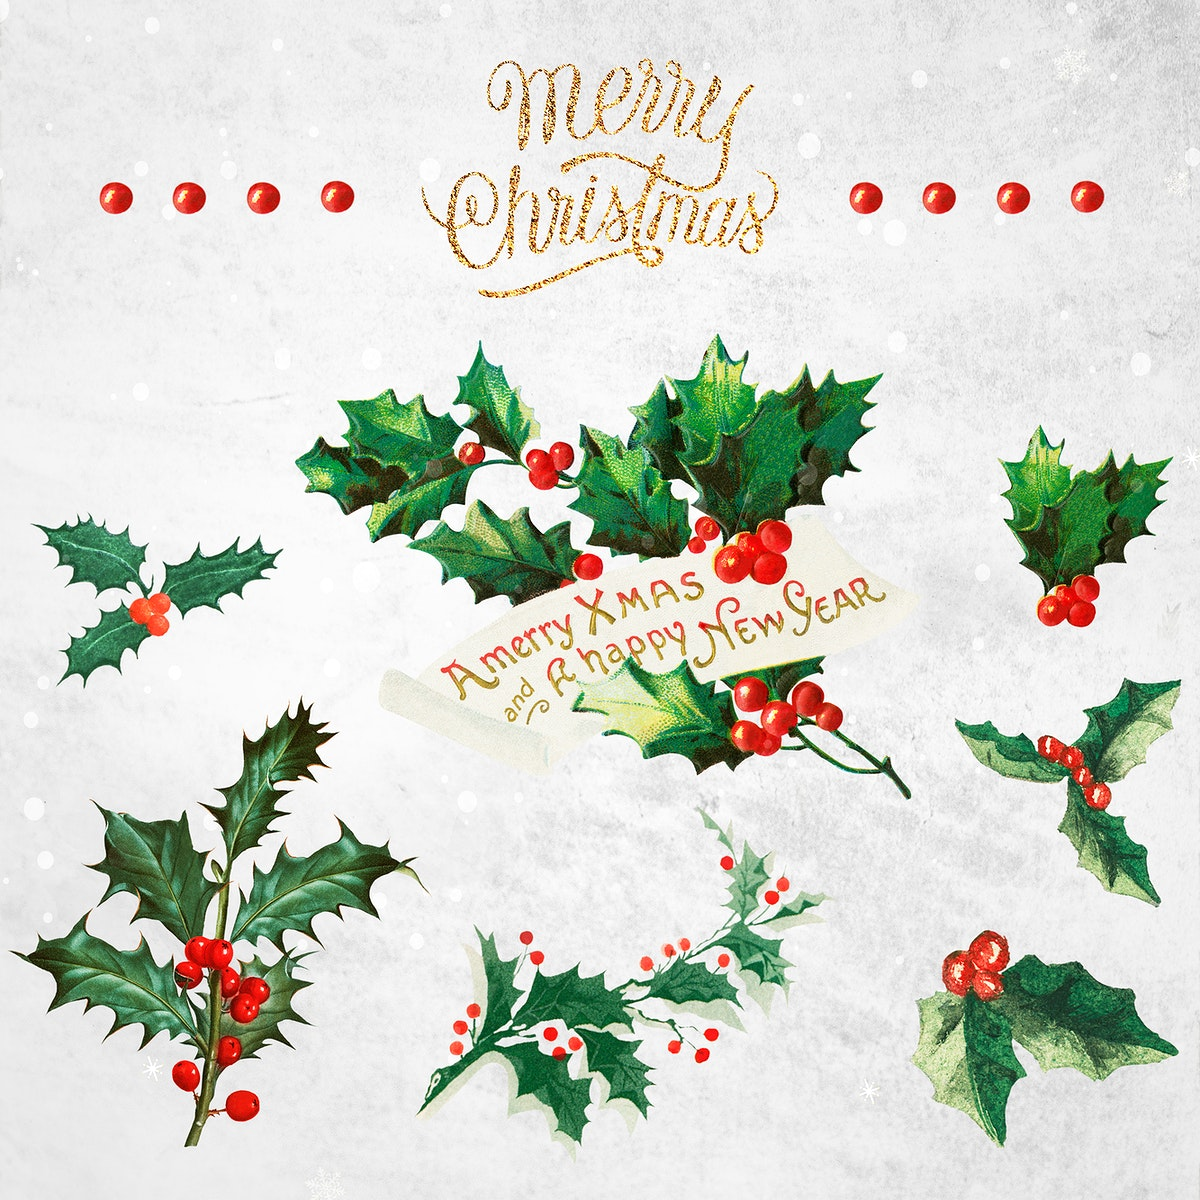 Festive merry Christmas social ads template collection